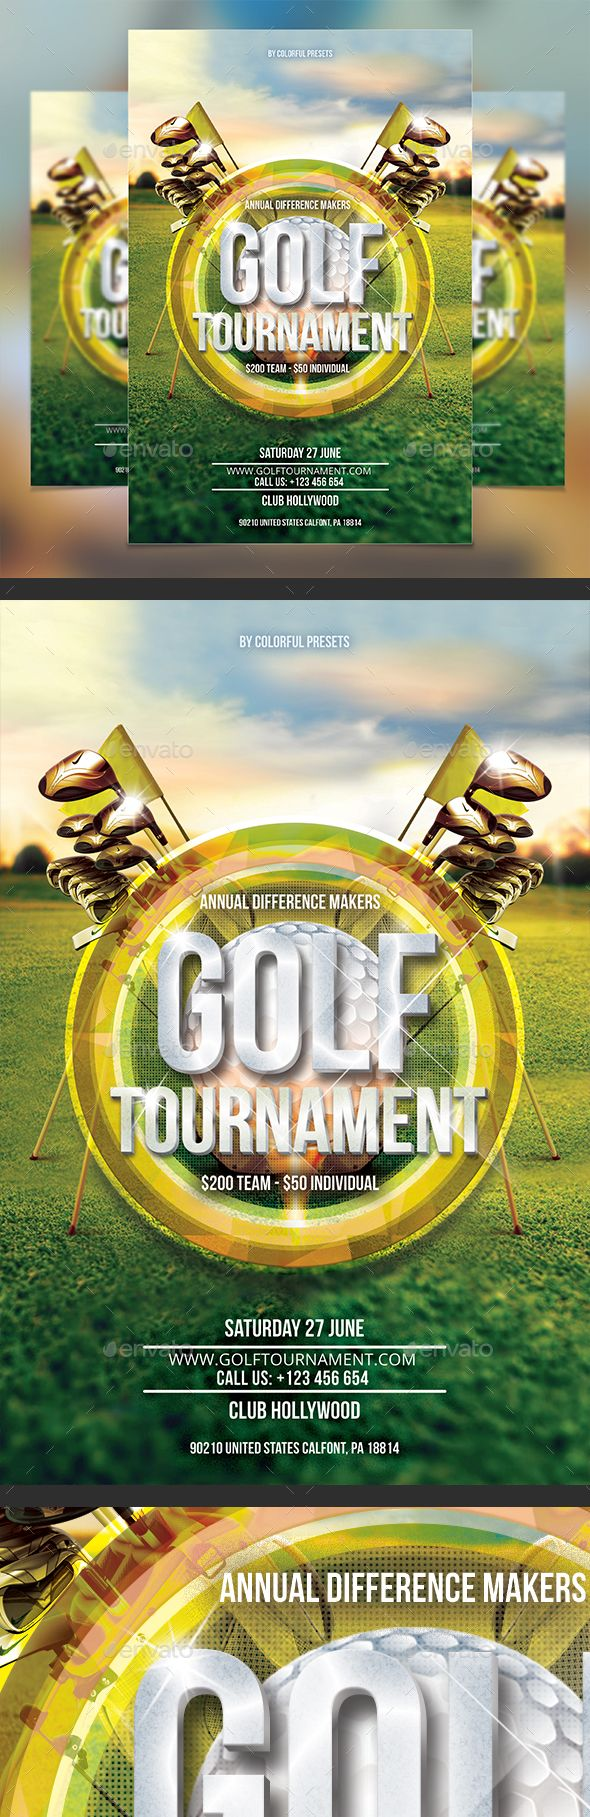 golf tournament flyer template download pike productoseb co